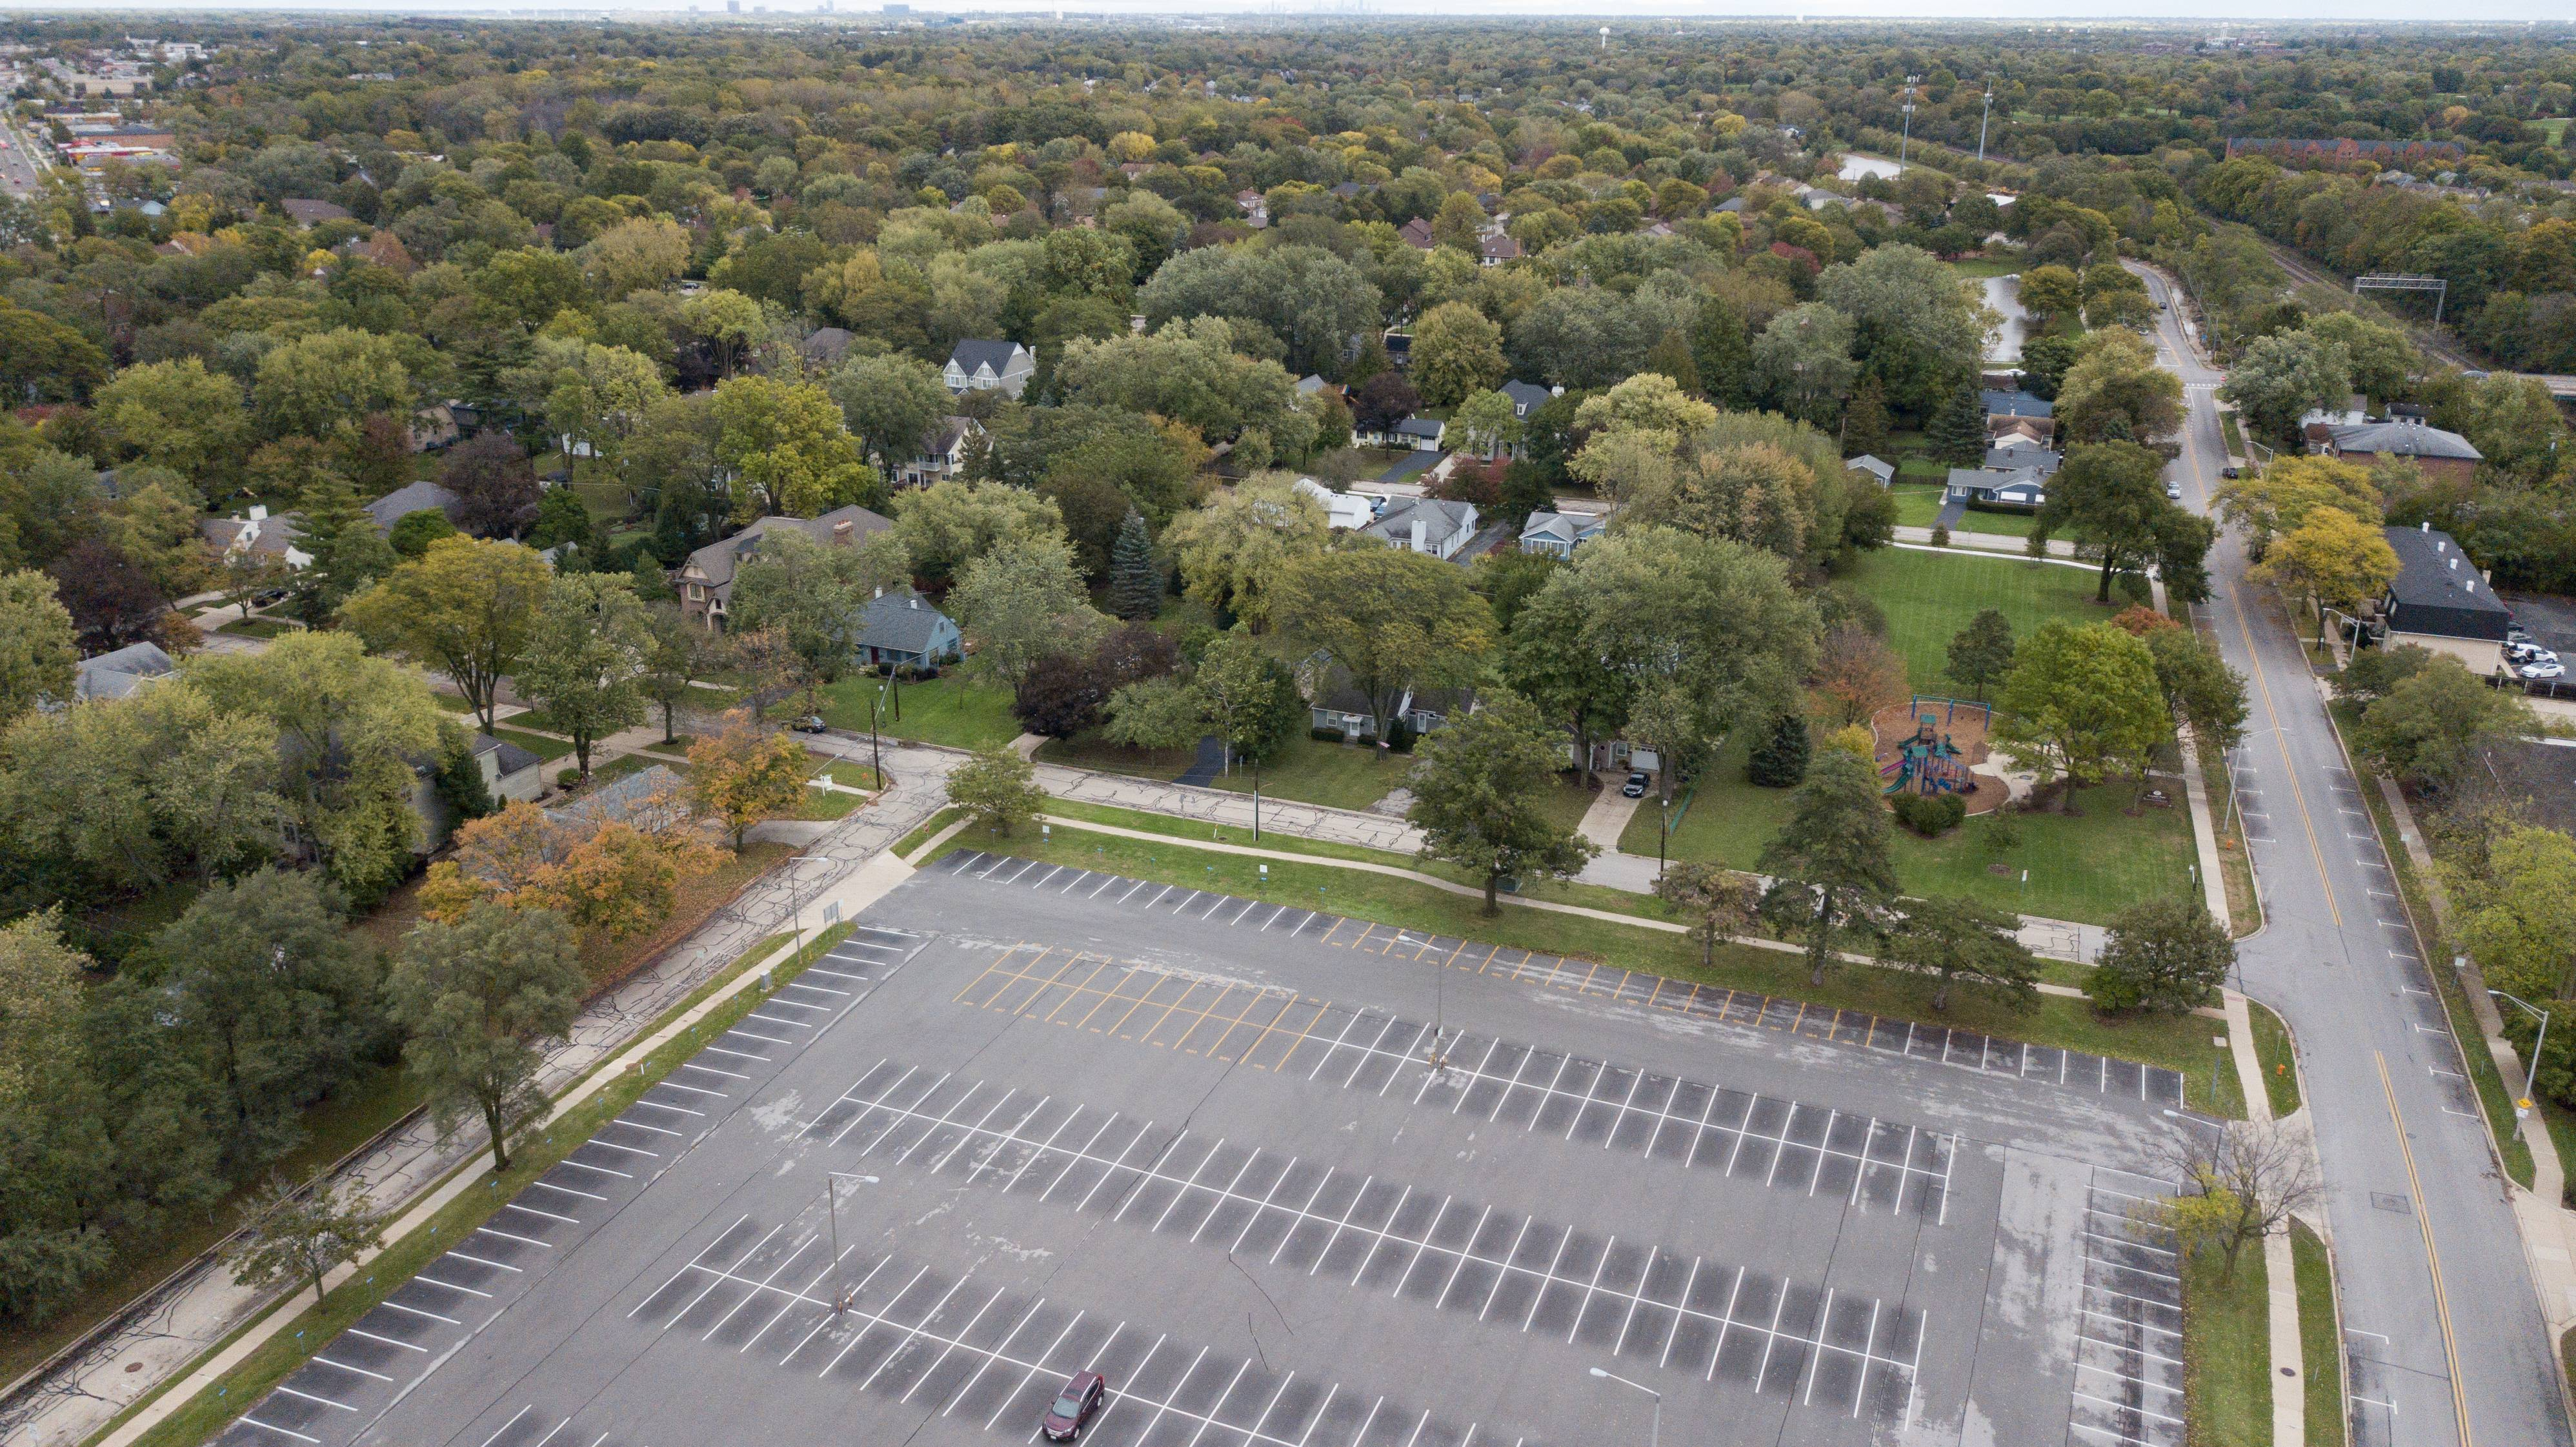 The Naperville City Council now can consider survey data about commuter parking and permit parking waiting lists as members weigh next steps in the process of redeveloping 13 city-owned acres along 5th Avenue near the Metra station.